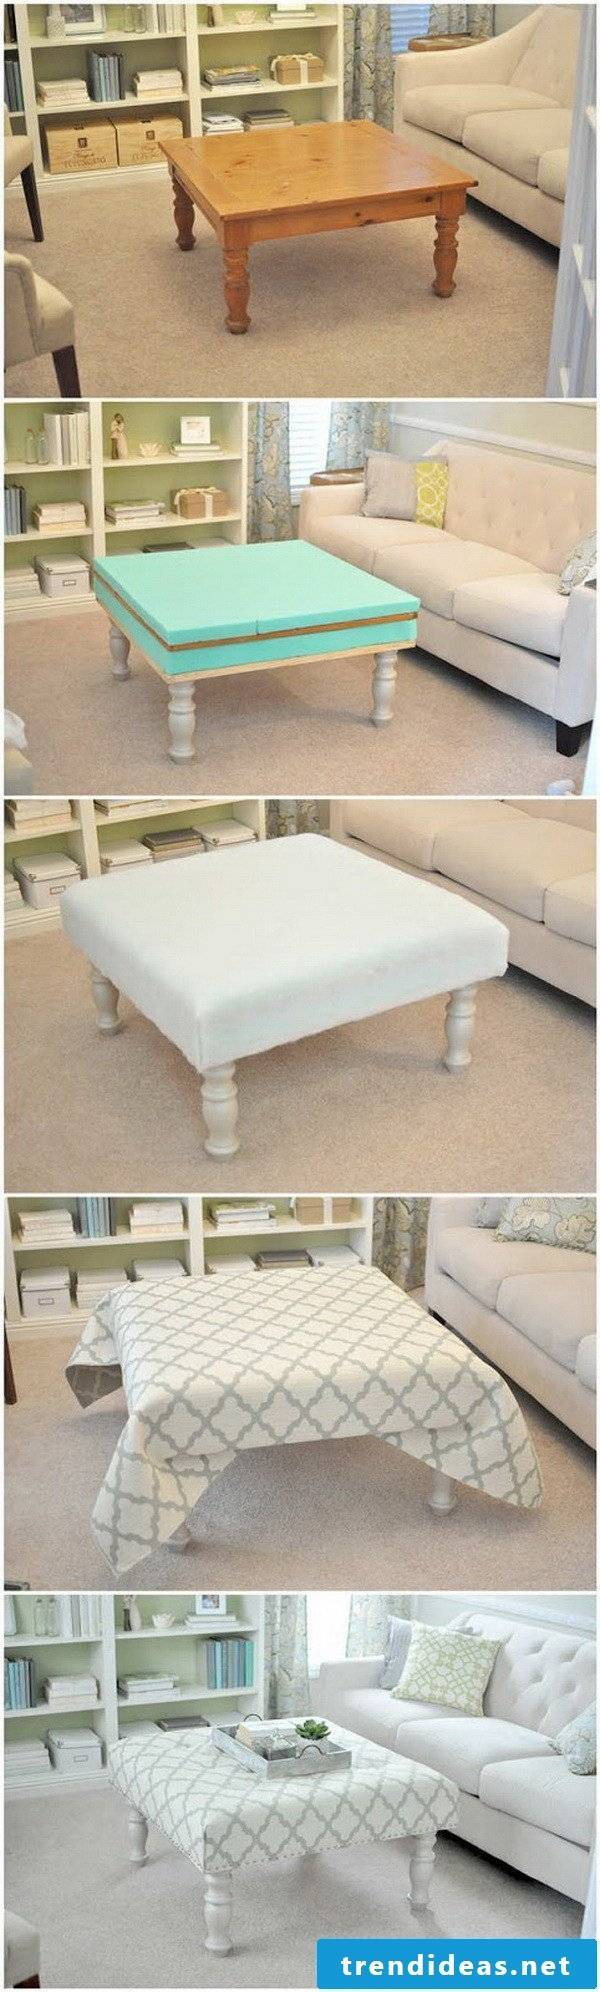 DIY build your own table: Do it yourself hacks